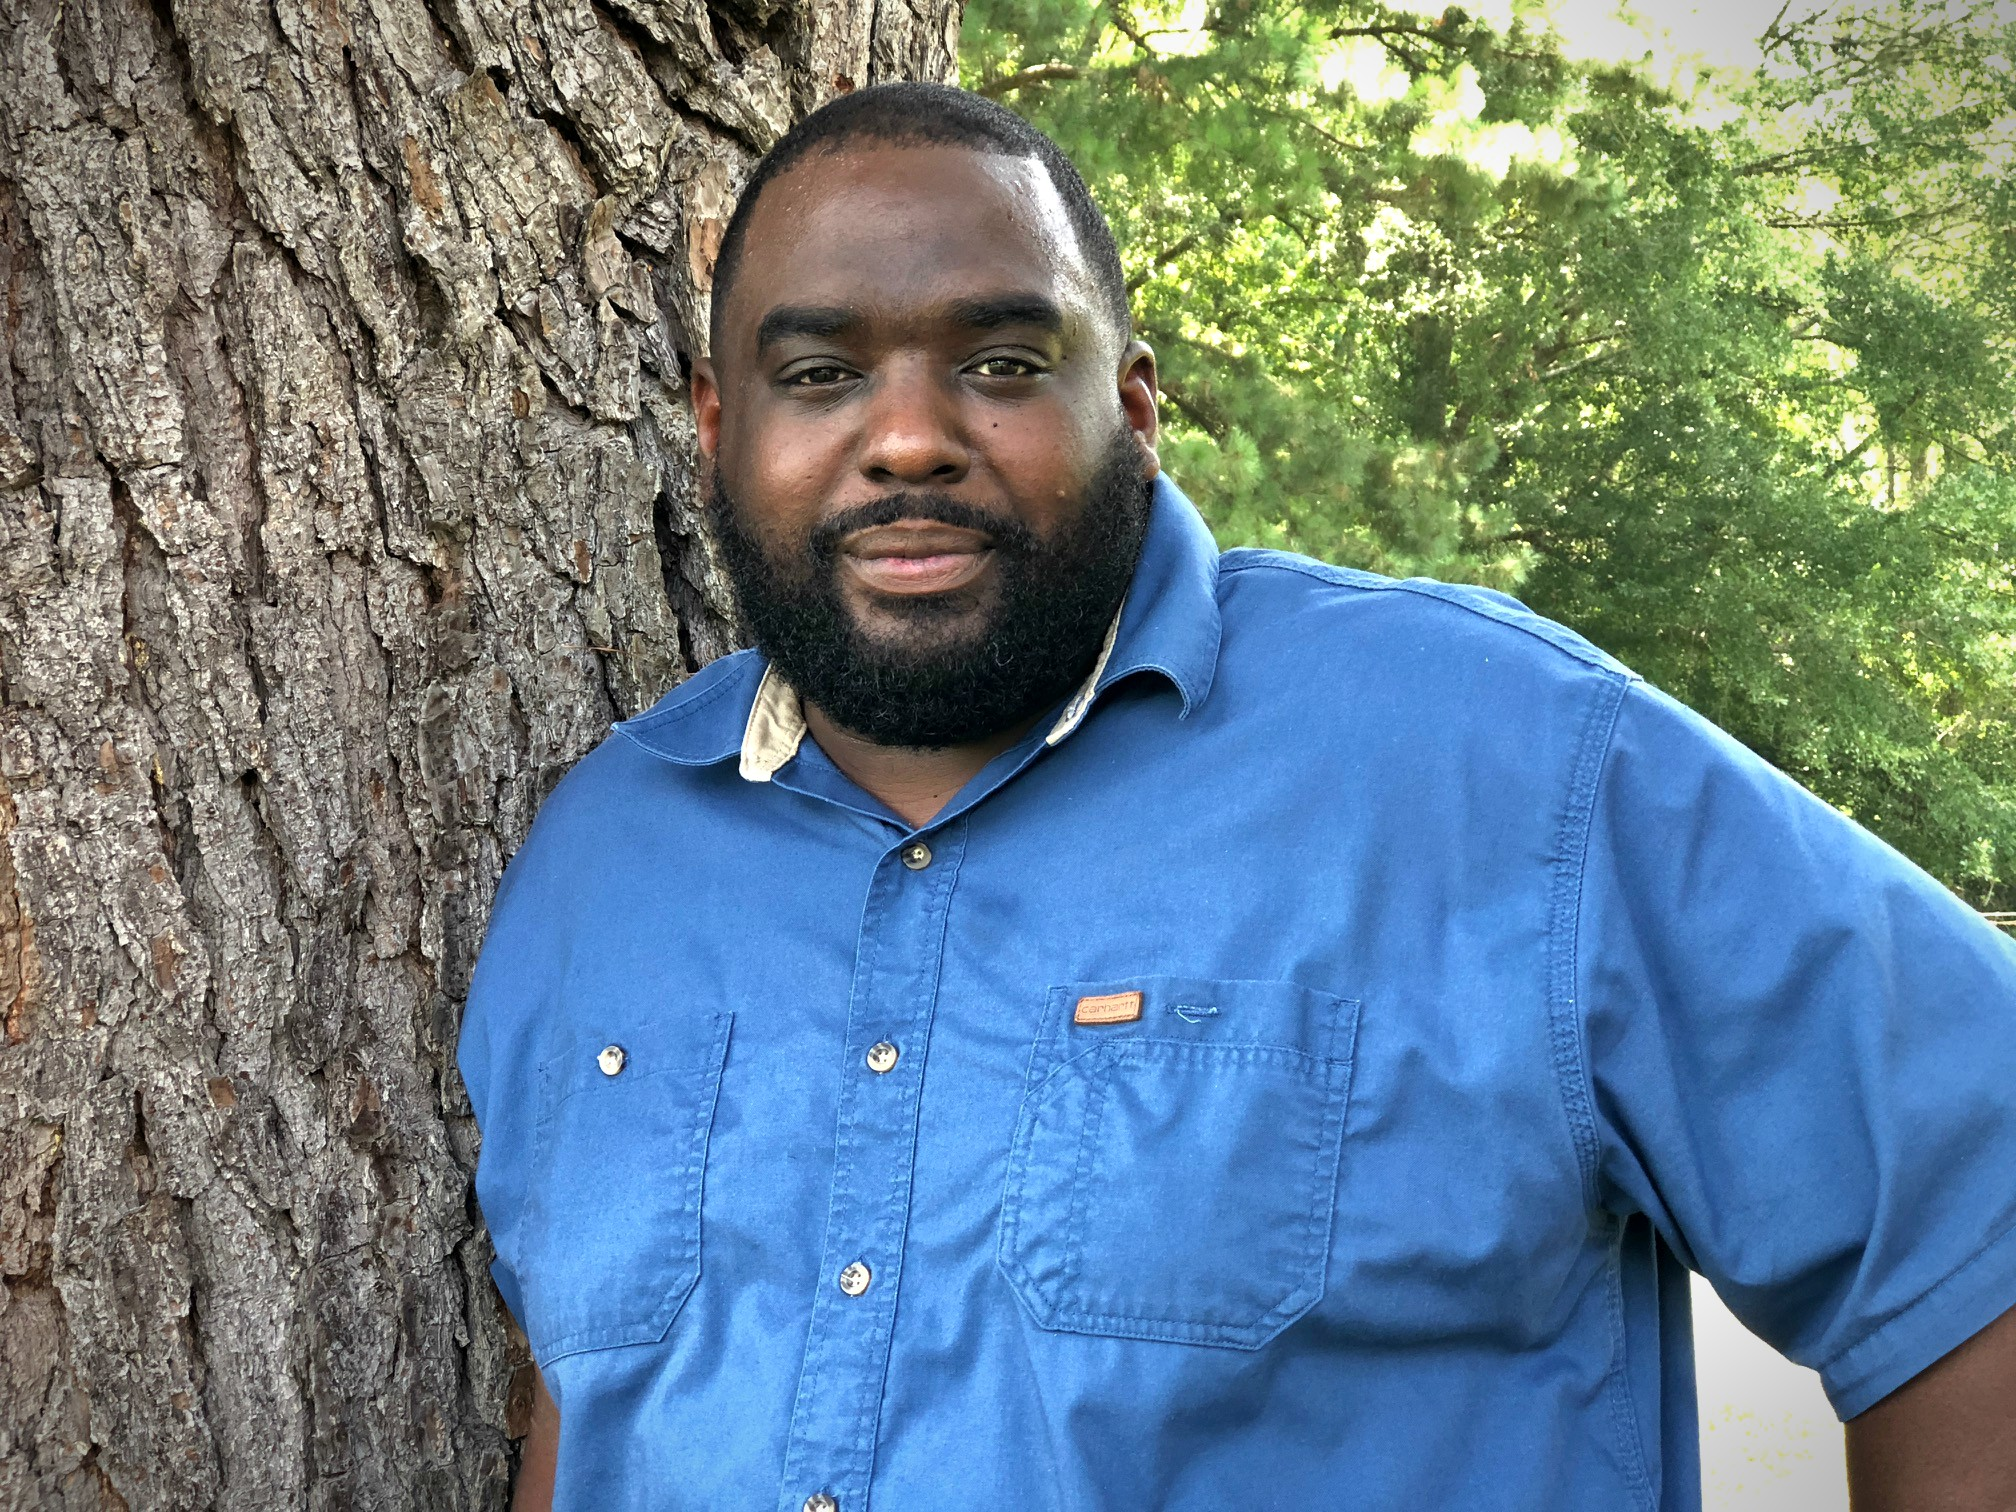 Trylon Williams named 2019 Small Farmer of the Year